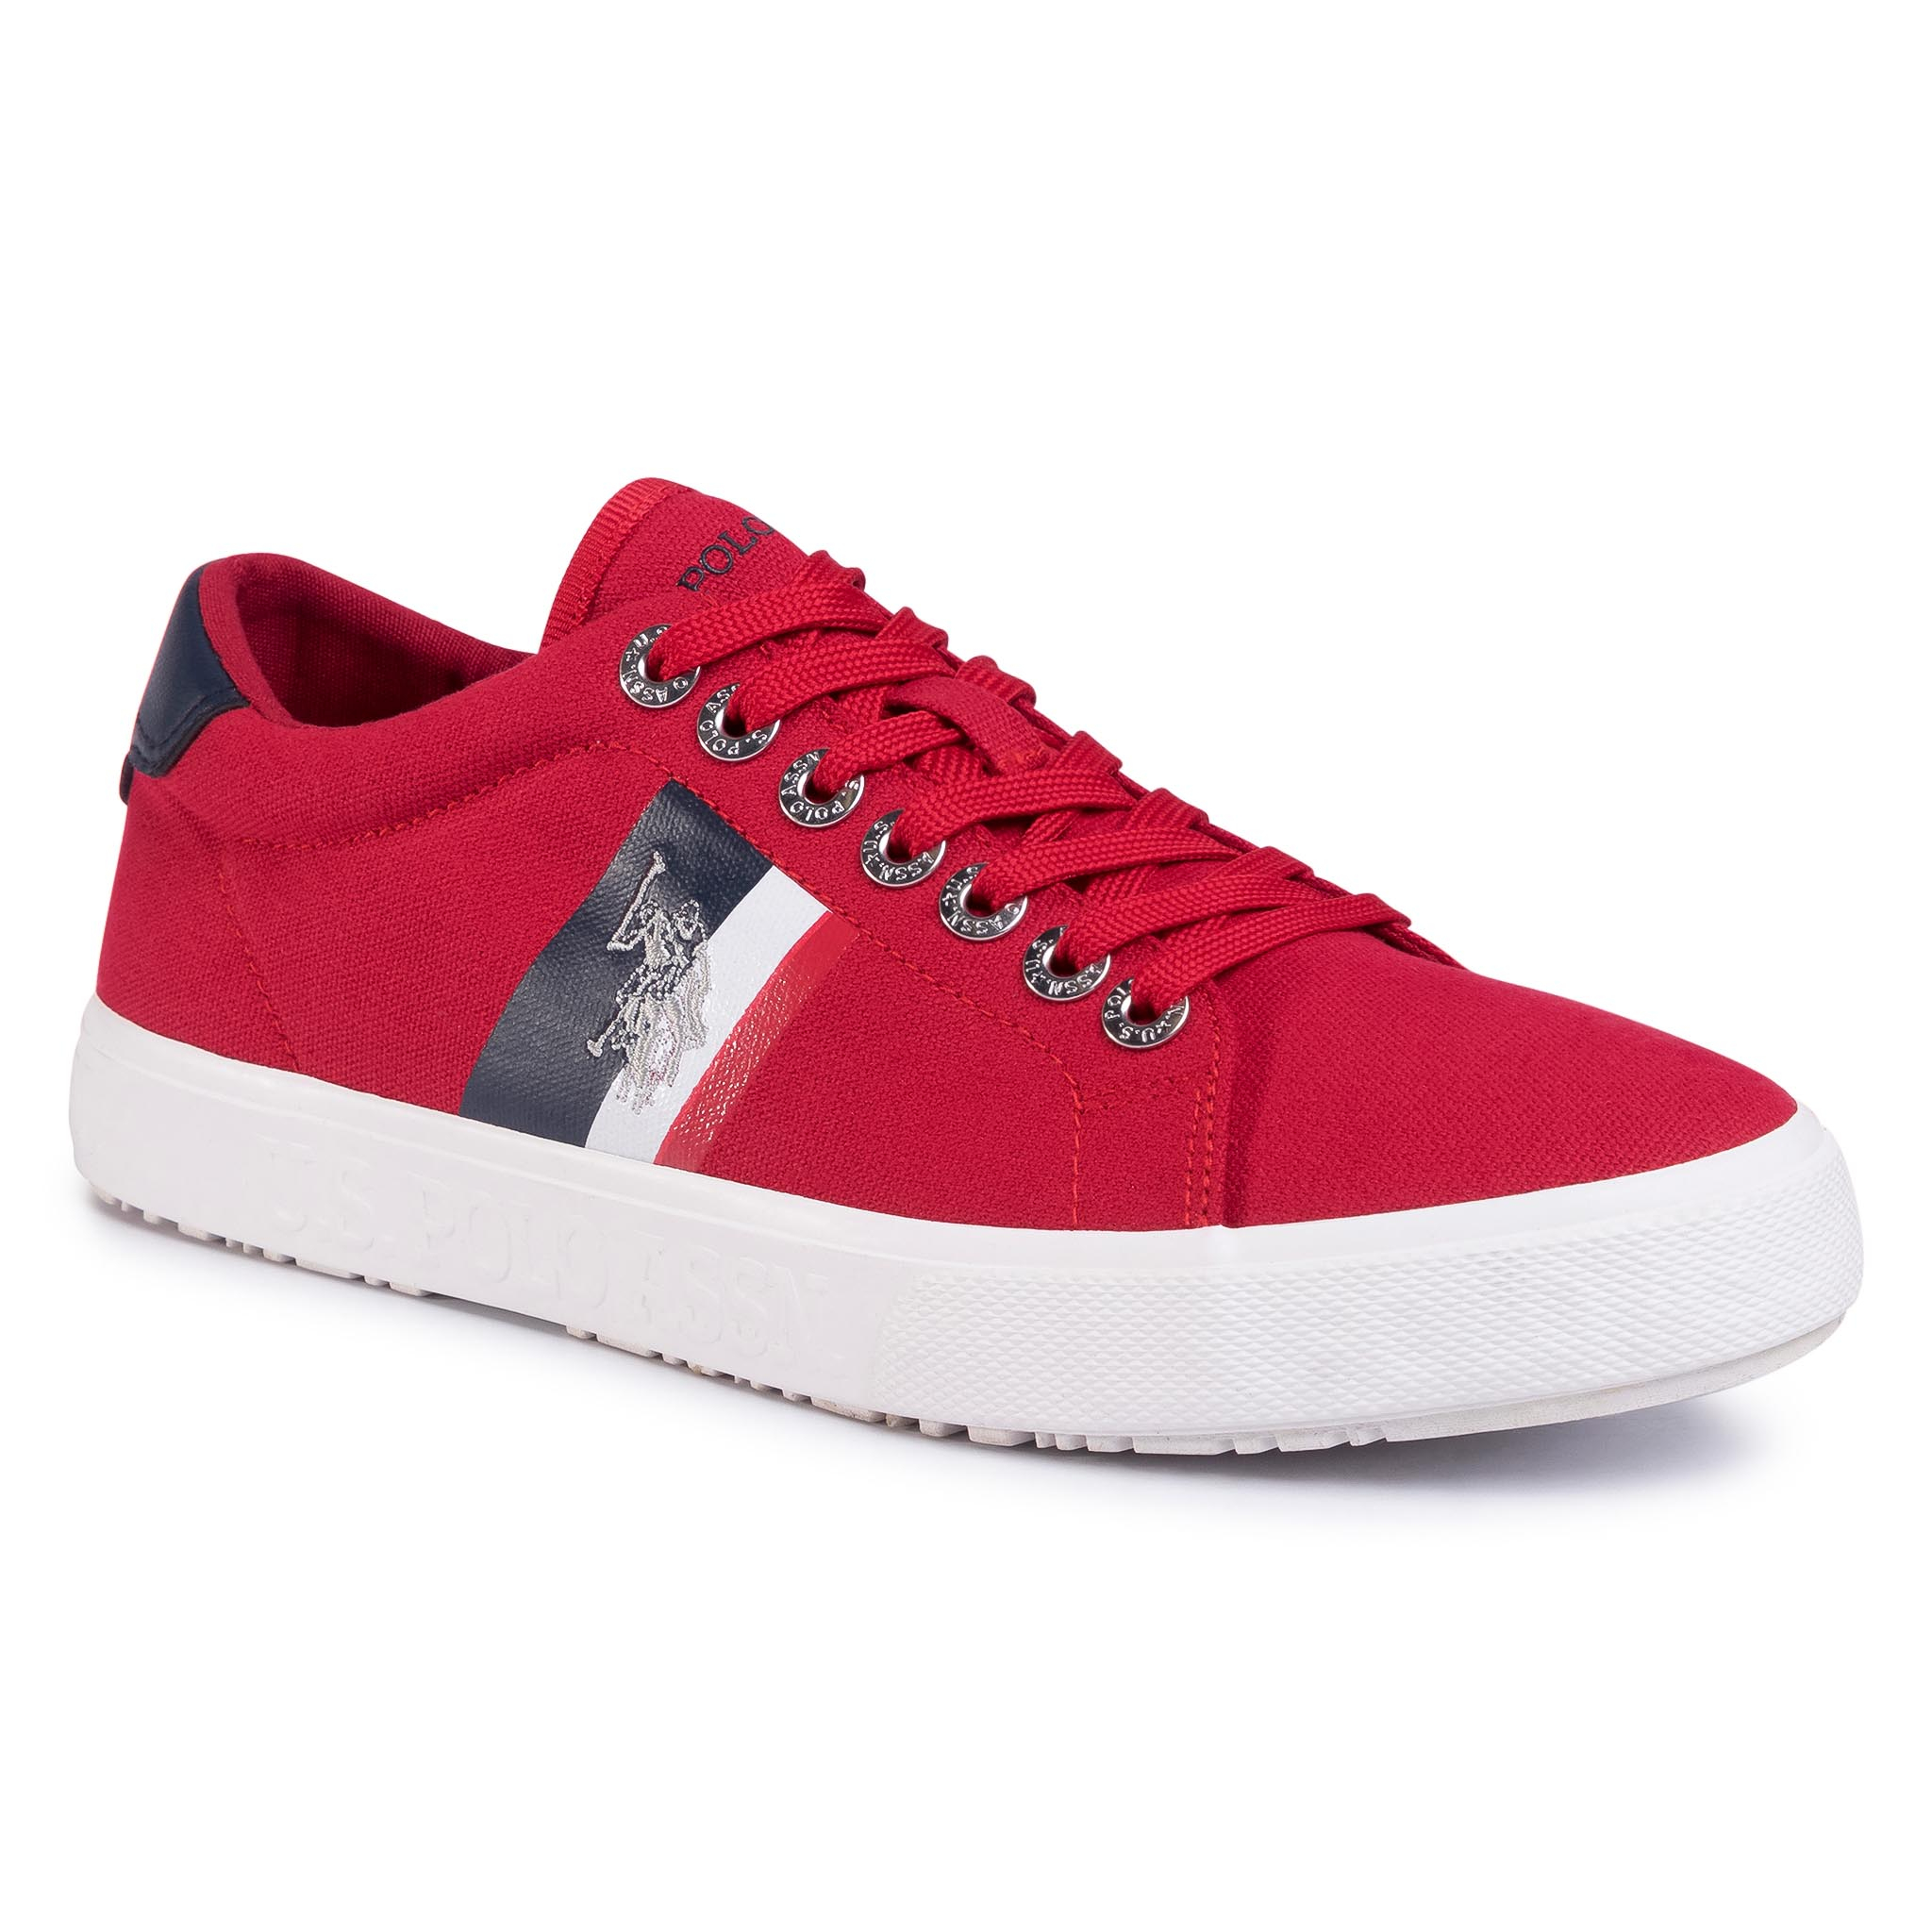 Teniși U.S. Polo Assn. - Jaxon1 Marcs4082s0/Cy2 Red imagine epantofi.ro 2021